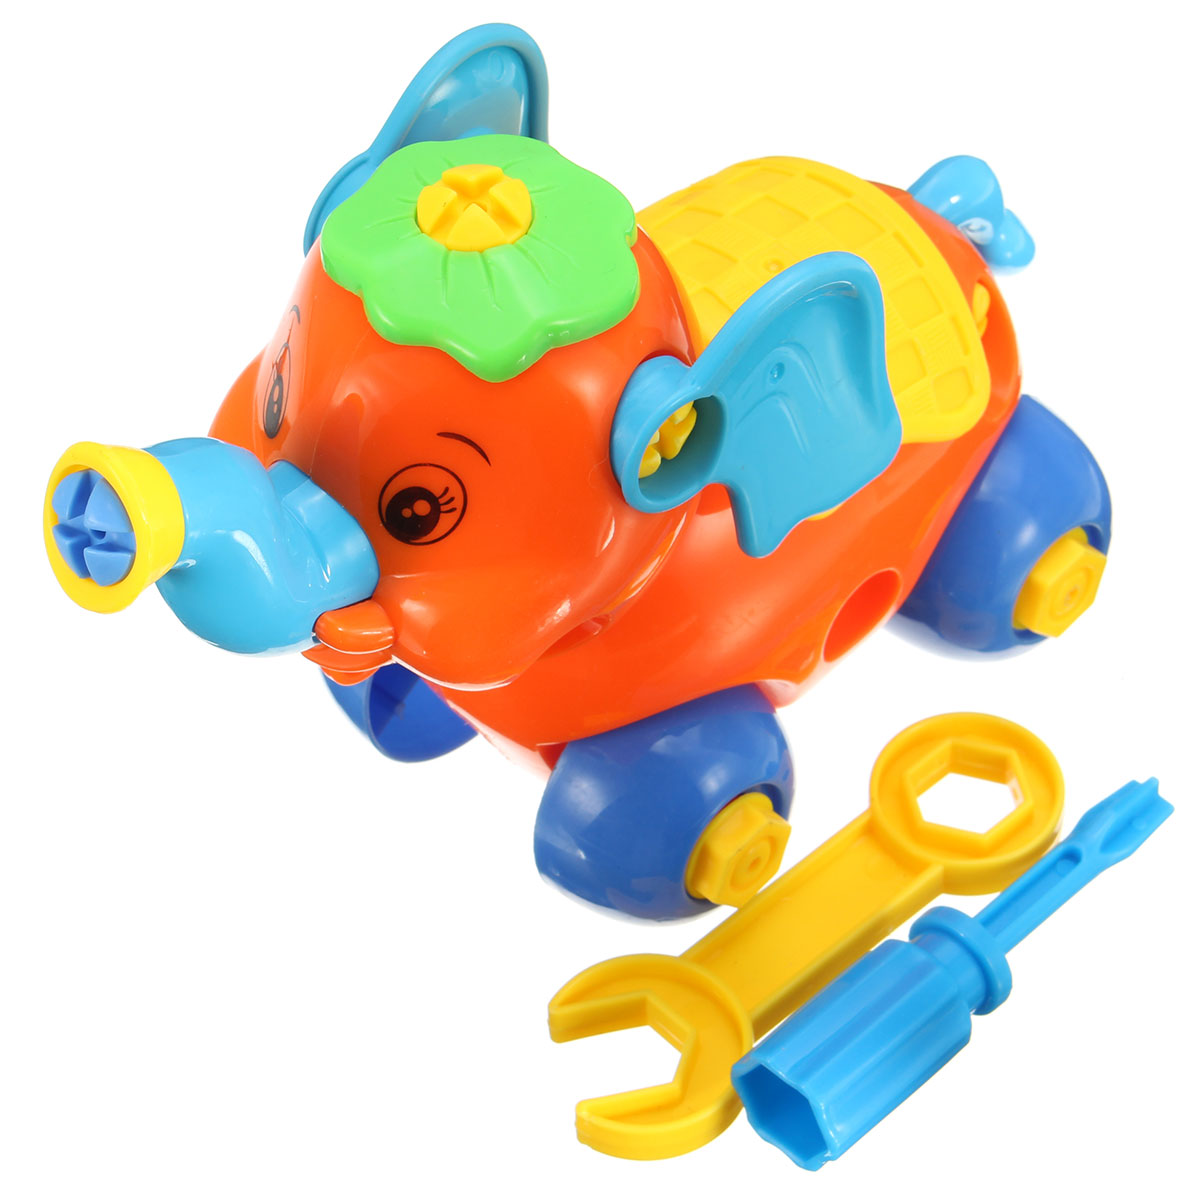 New Arrival DIY Children's Toys Assembled Toy With Tool ...